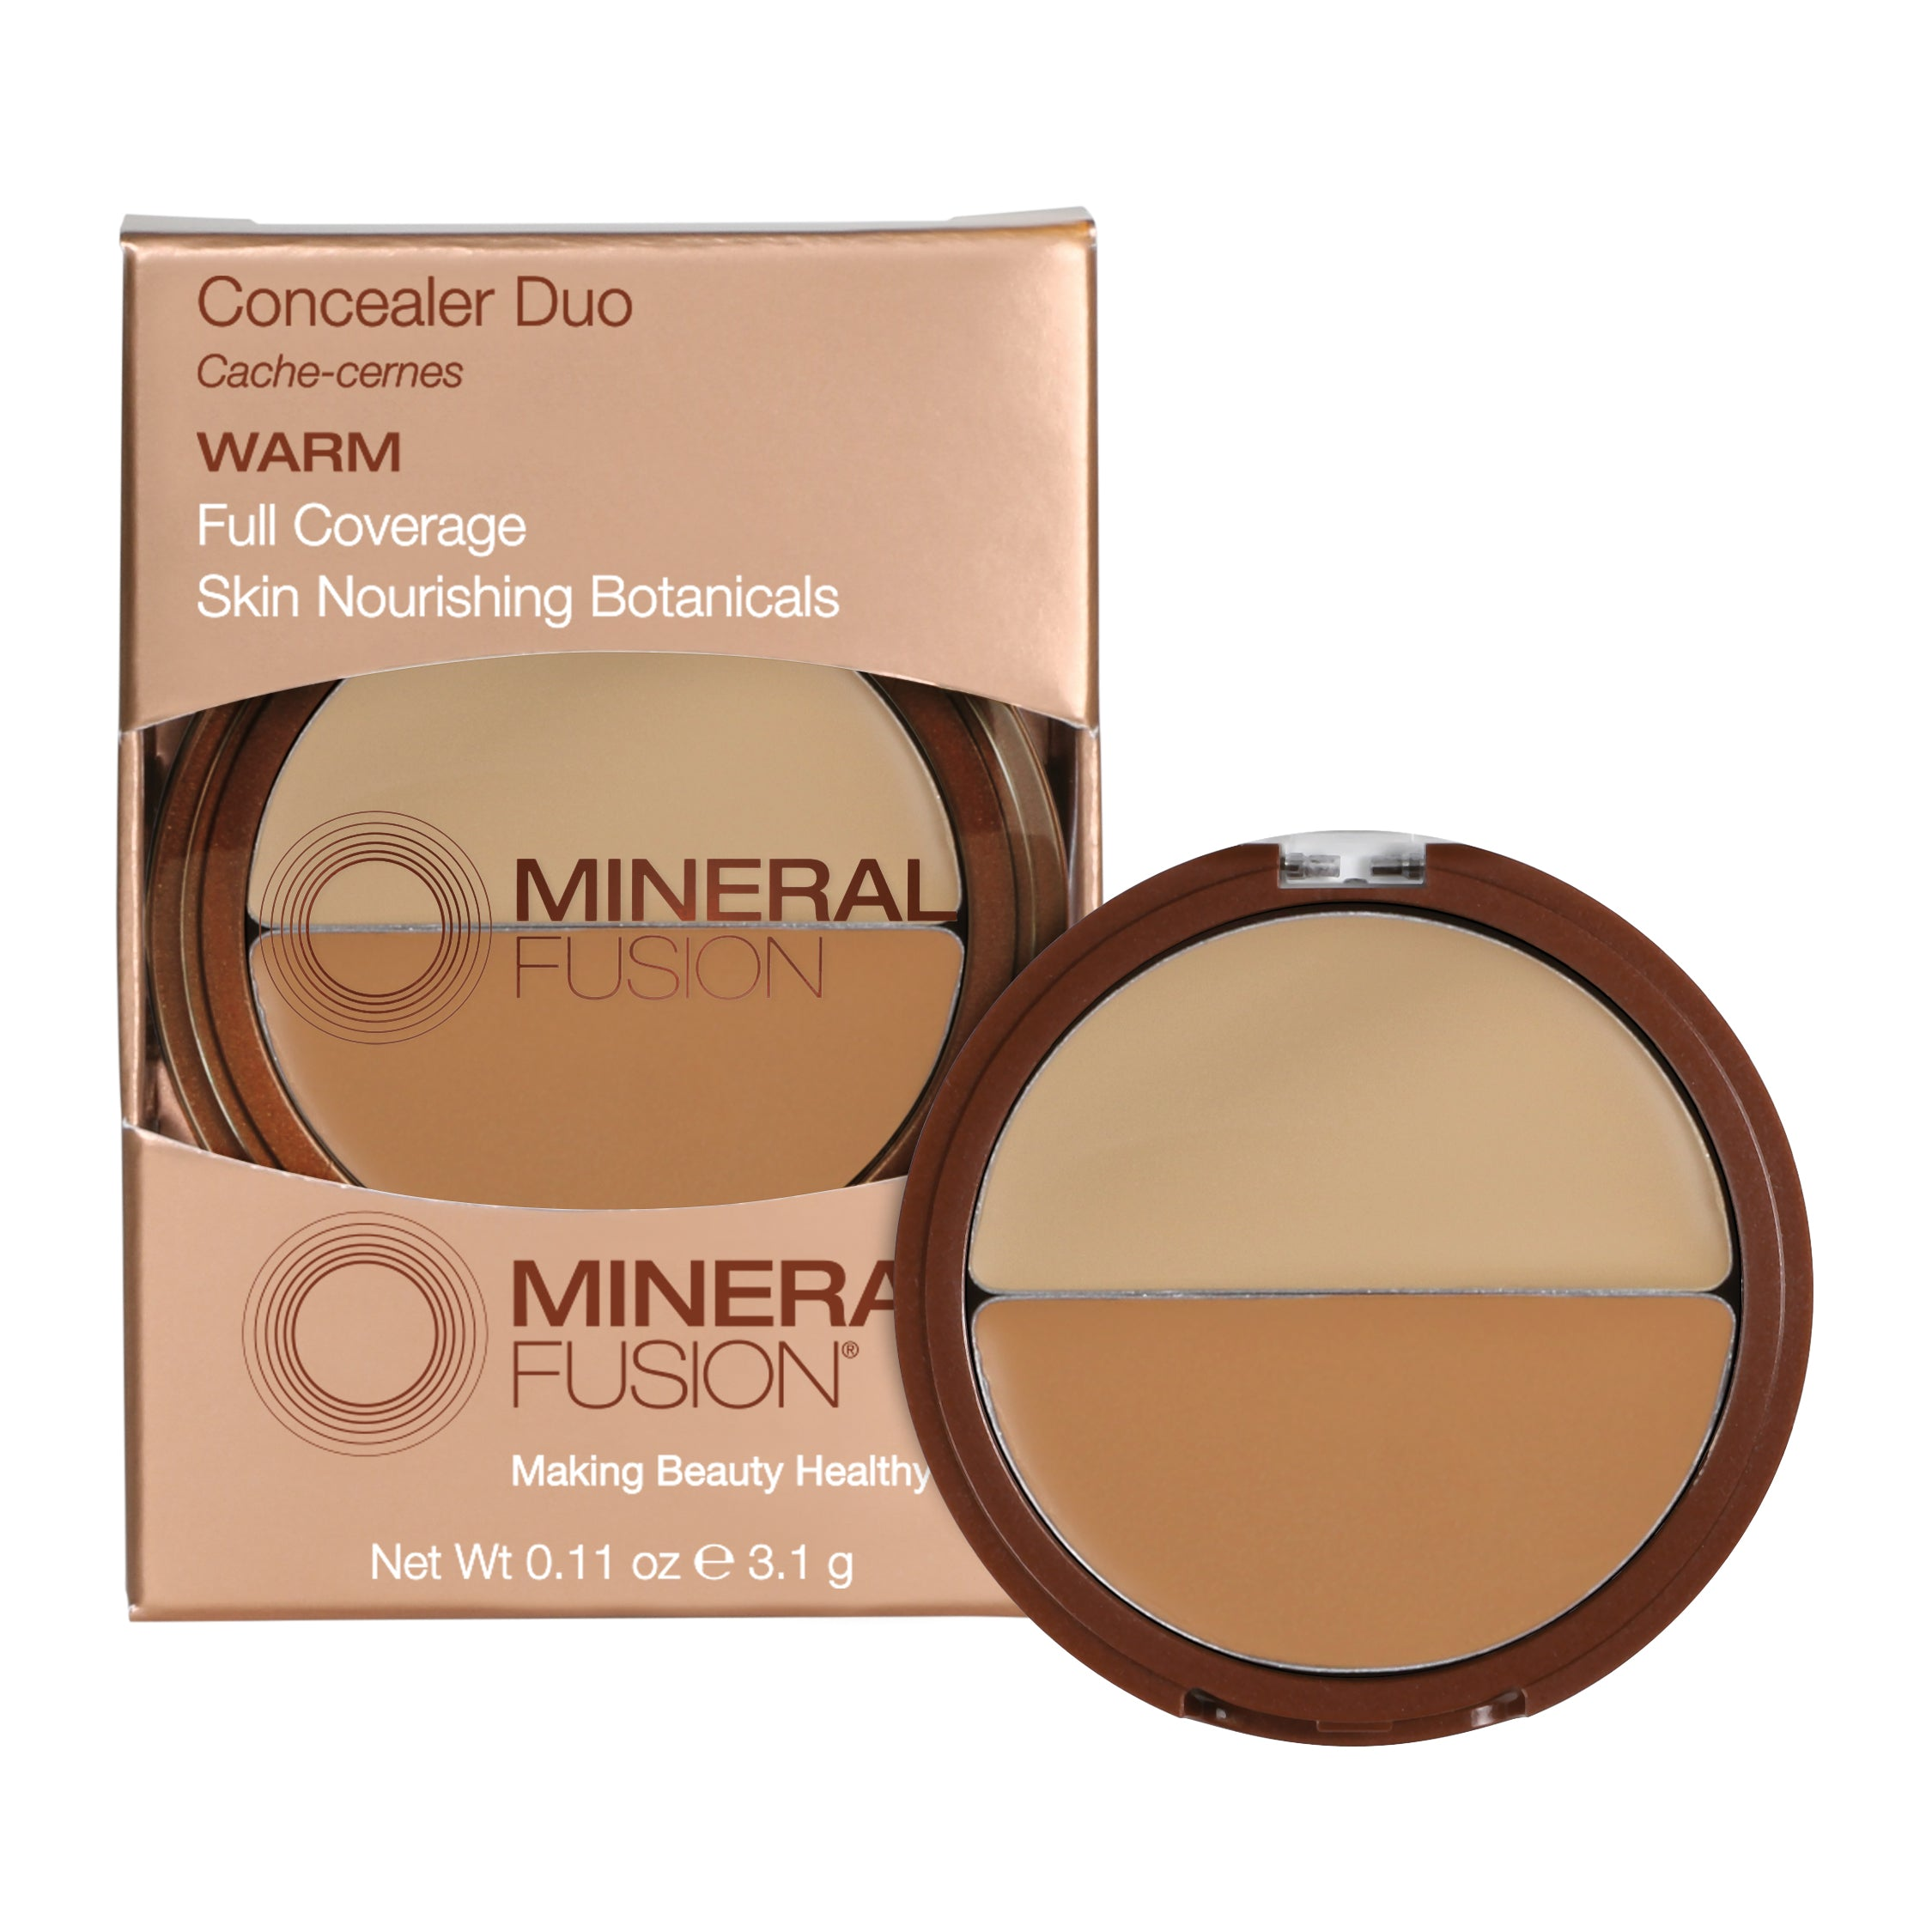 Concealer Duo - Mineral Fusion